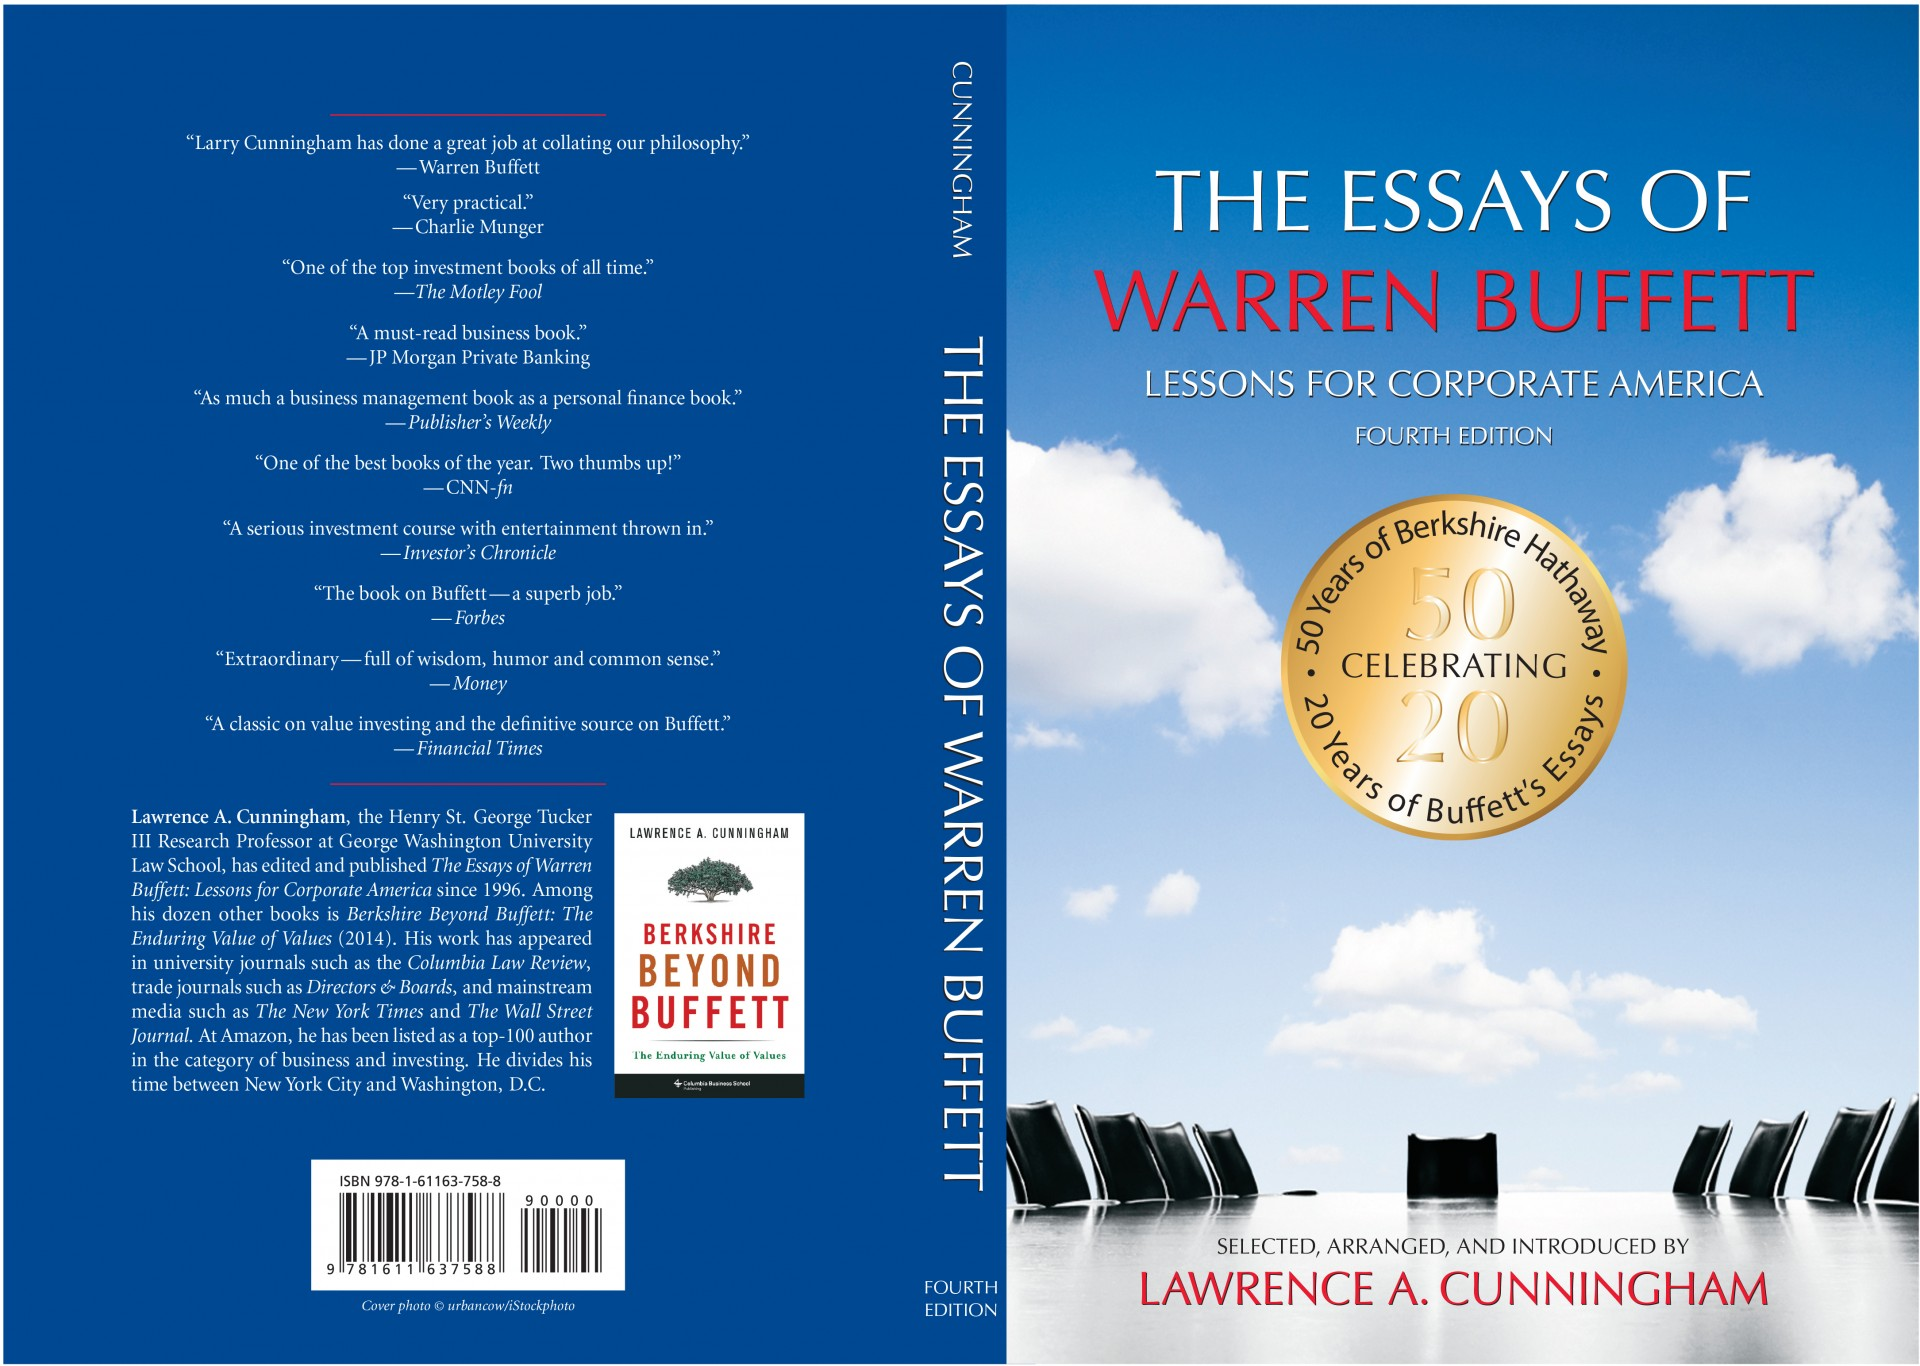 002 The Essays Of Warren Buffett Essay Stirring Pages Audiobook Download Summary 1920